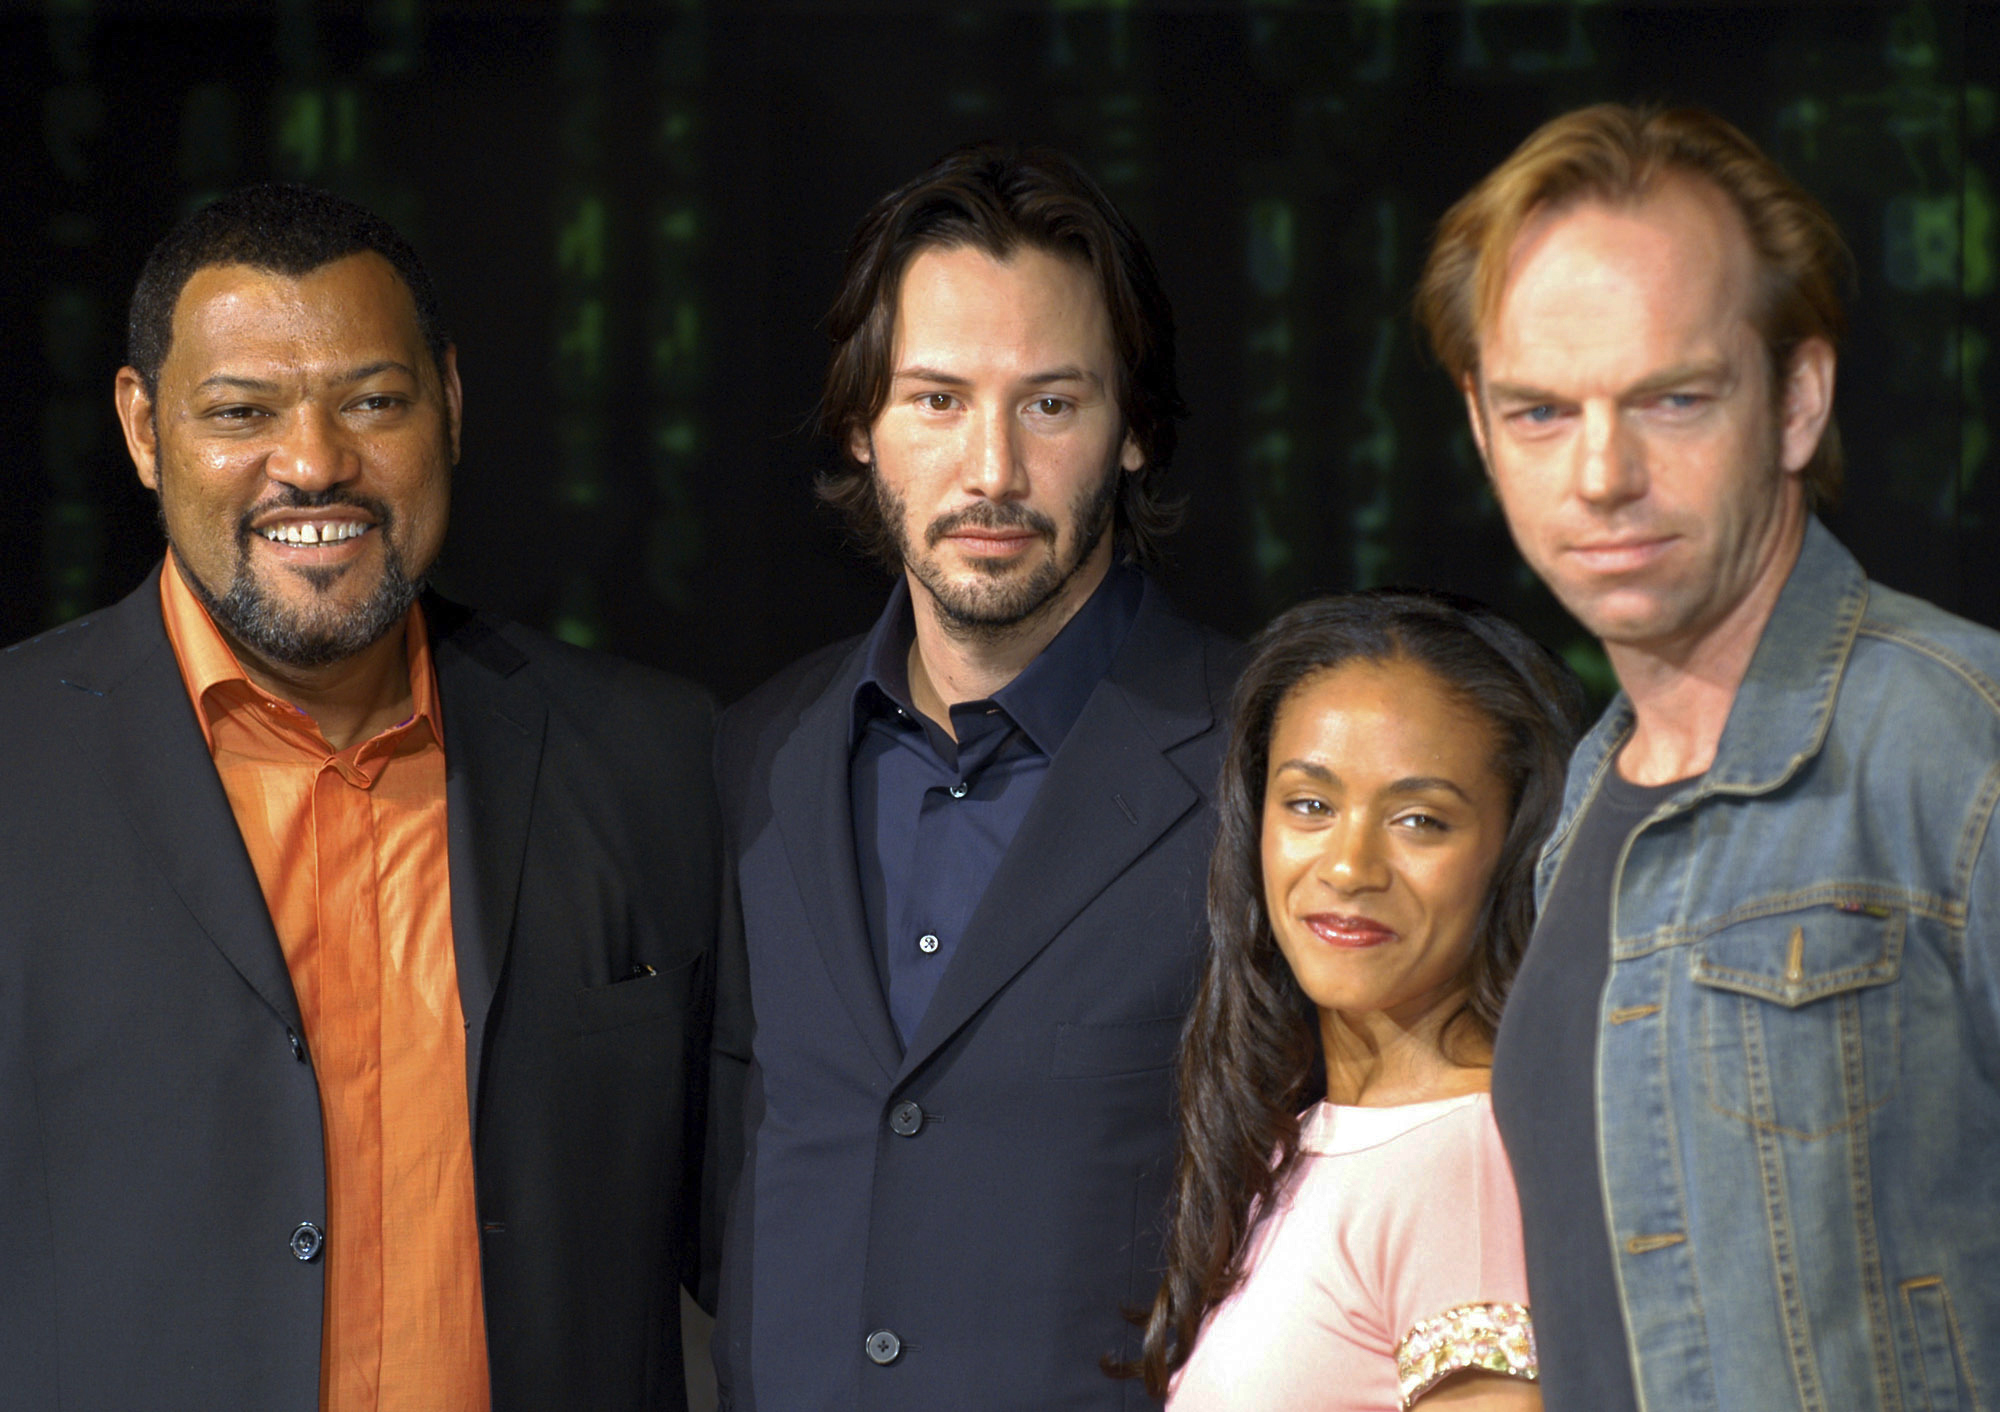 From left: Matrix cast members Laurence Fishburne, Keanu Reeves, Jada Pinkett Smith and Hugo Weaving are shown in this May 27, 2003 file photo. (AP Photo/Koji Sasahara)